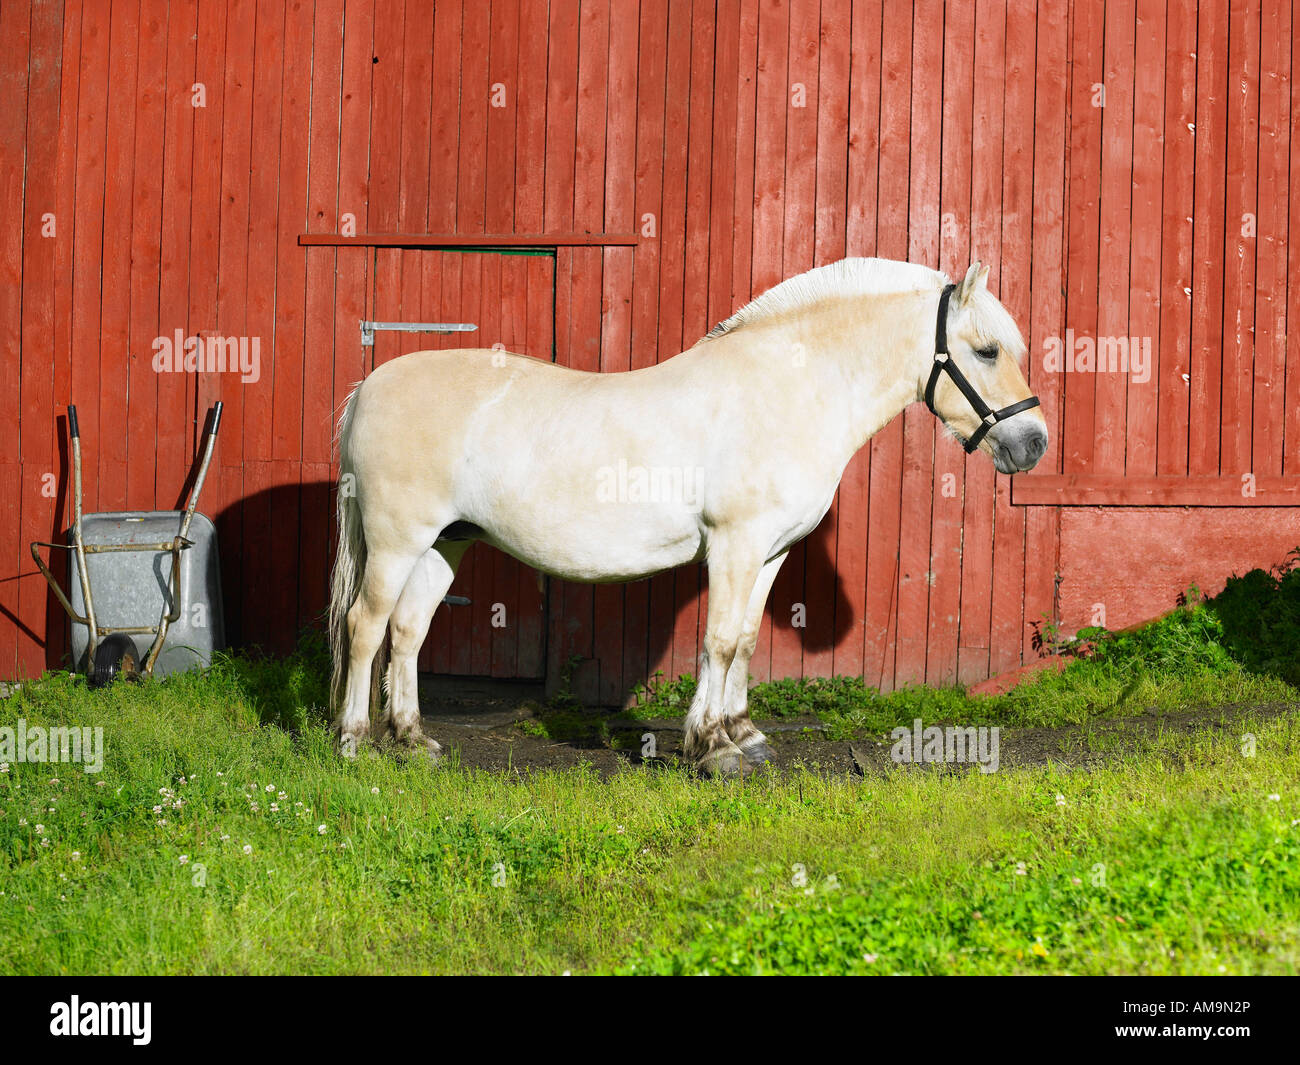 Horse standing alone in front of a red wall. - Stock Image